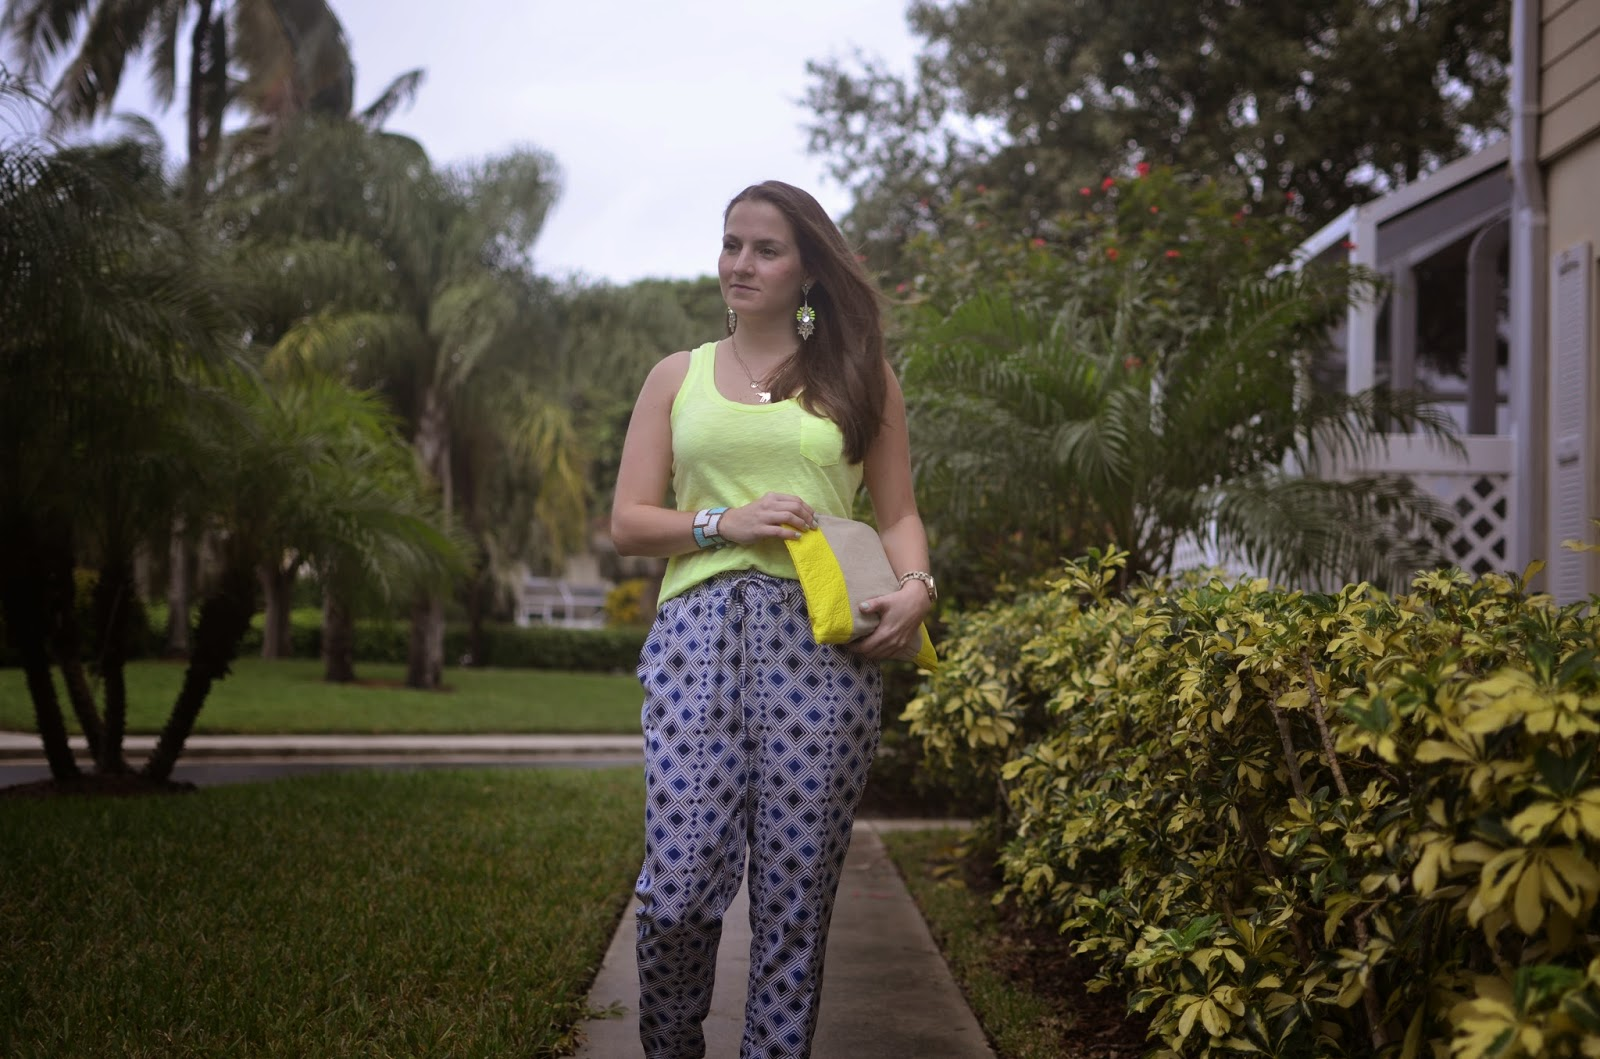 yellow tank - yellow clutch - printed pants - white sandals